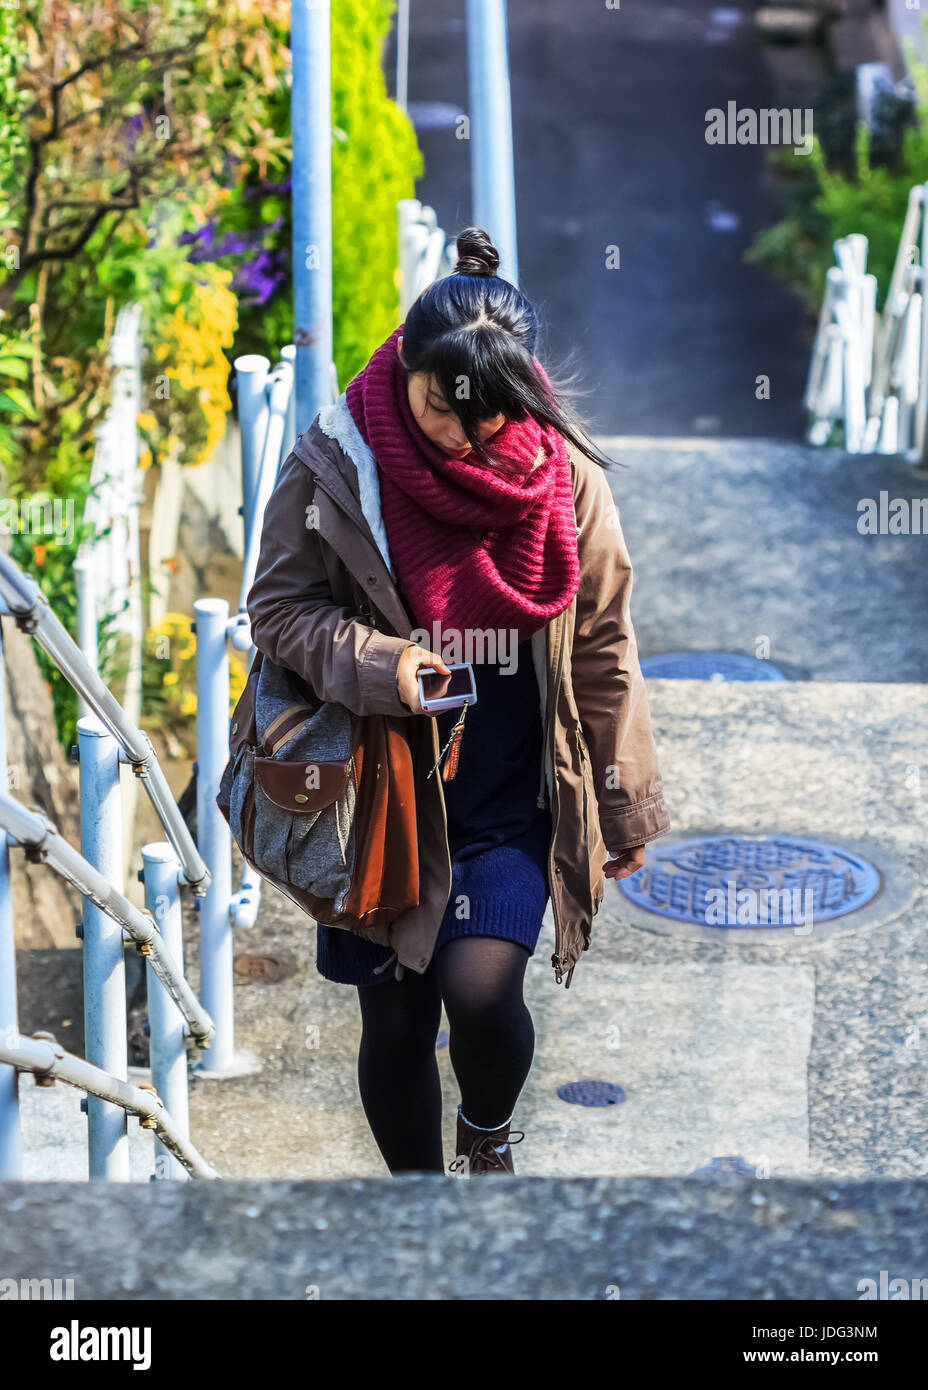 . Unidentified woman uses text chat on the phone while walking upstair - Stock Image